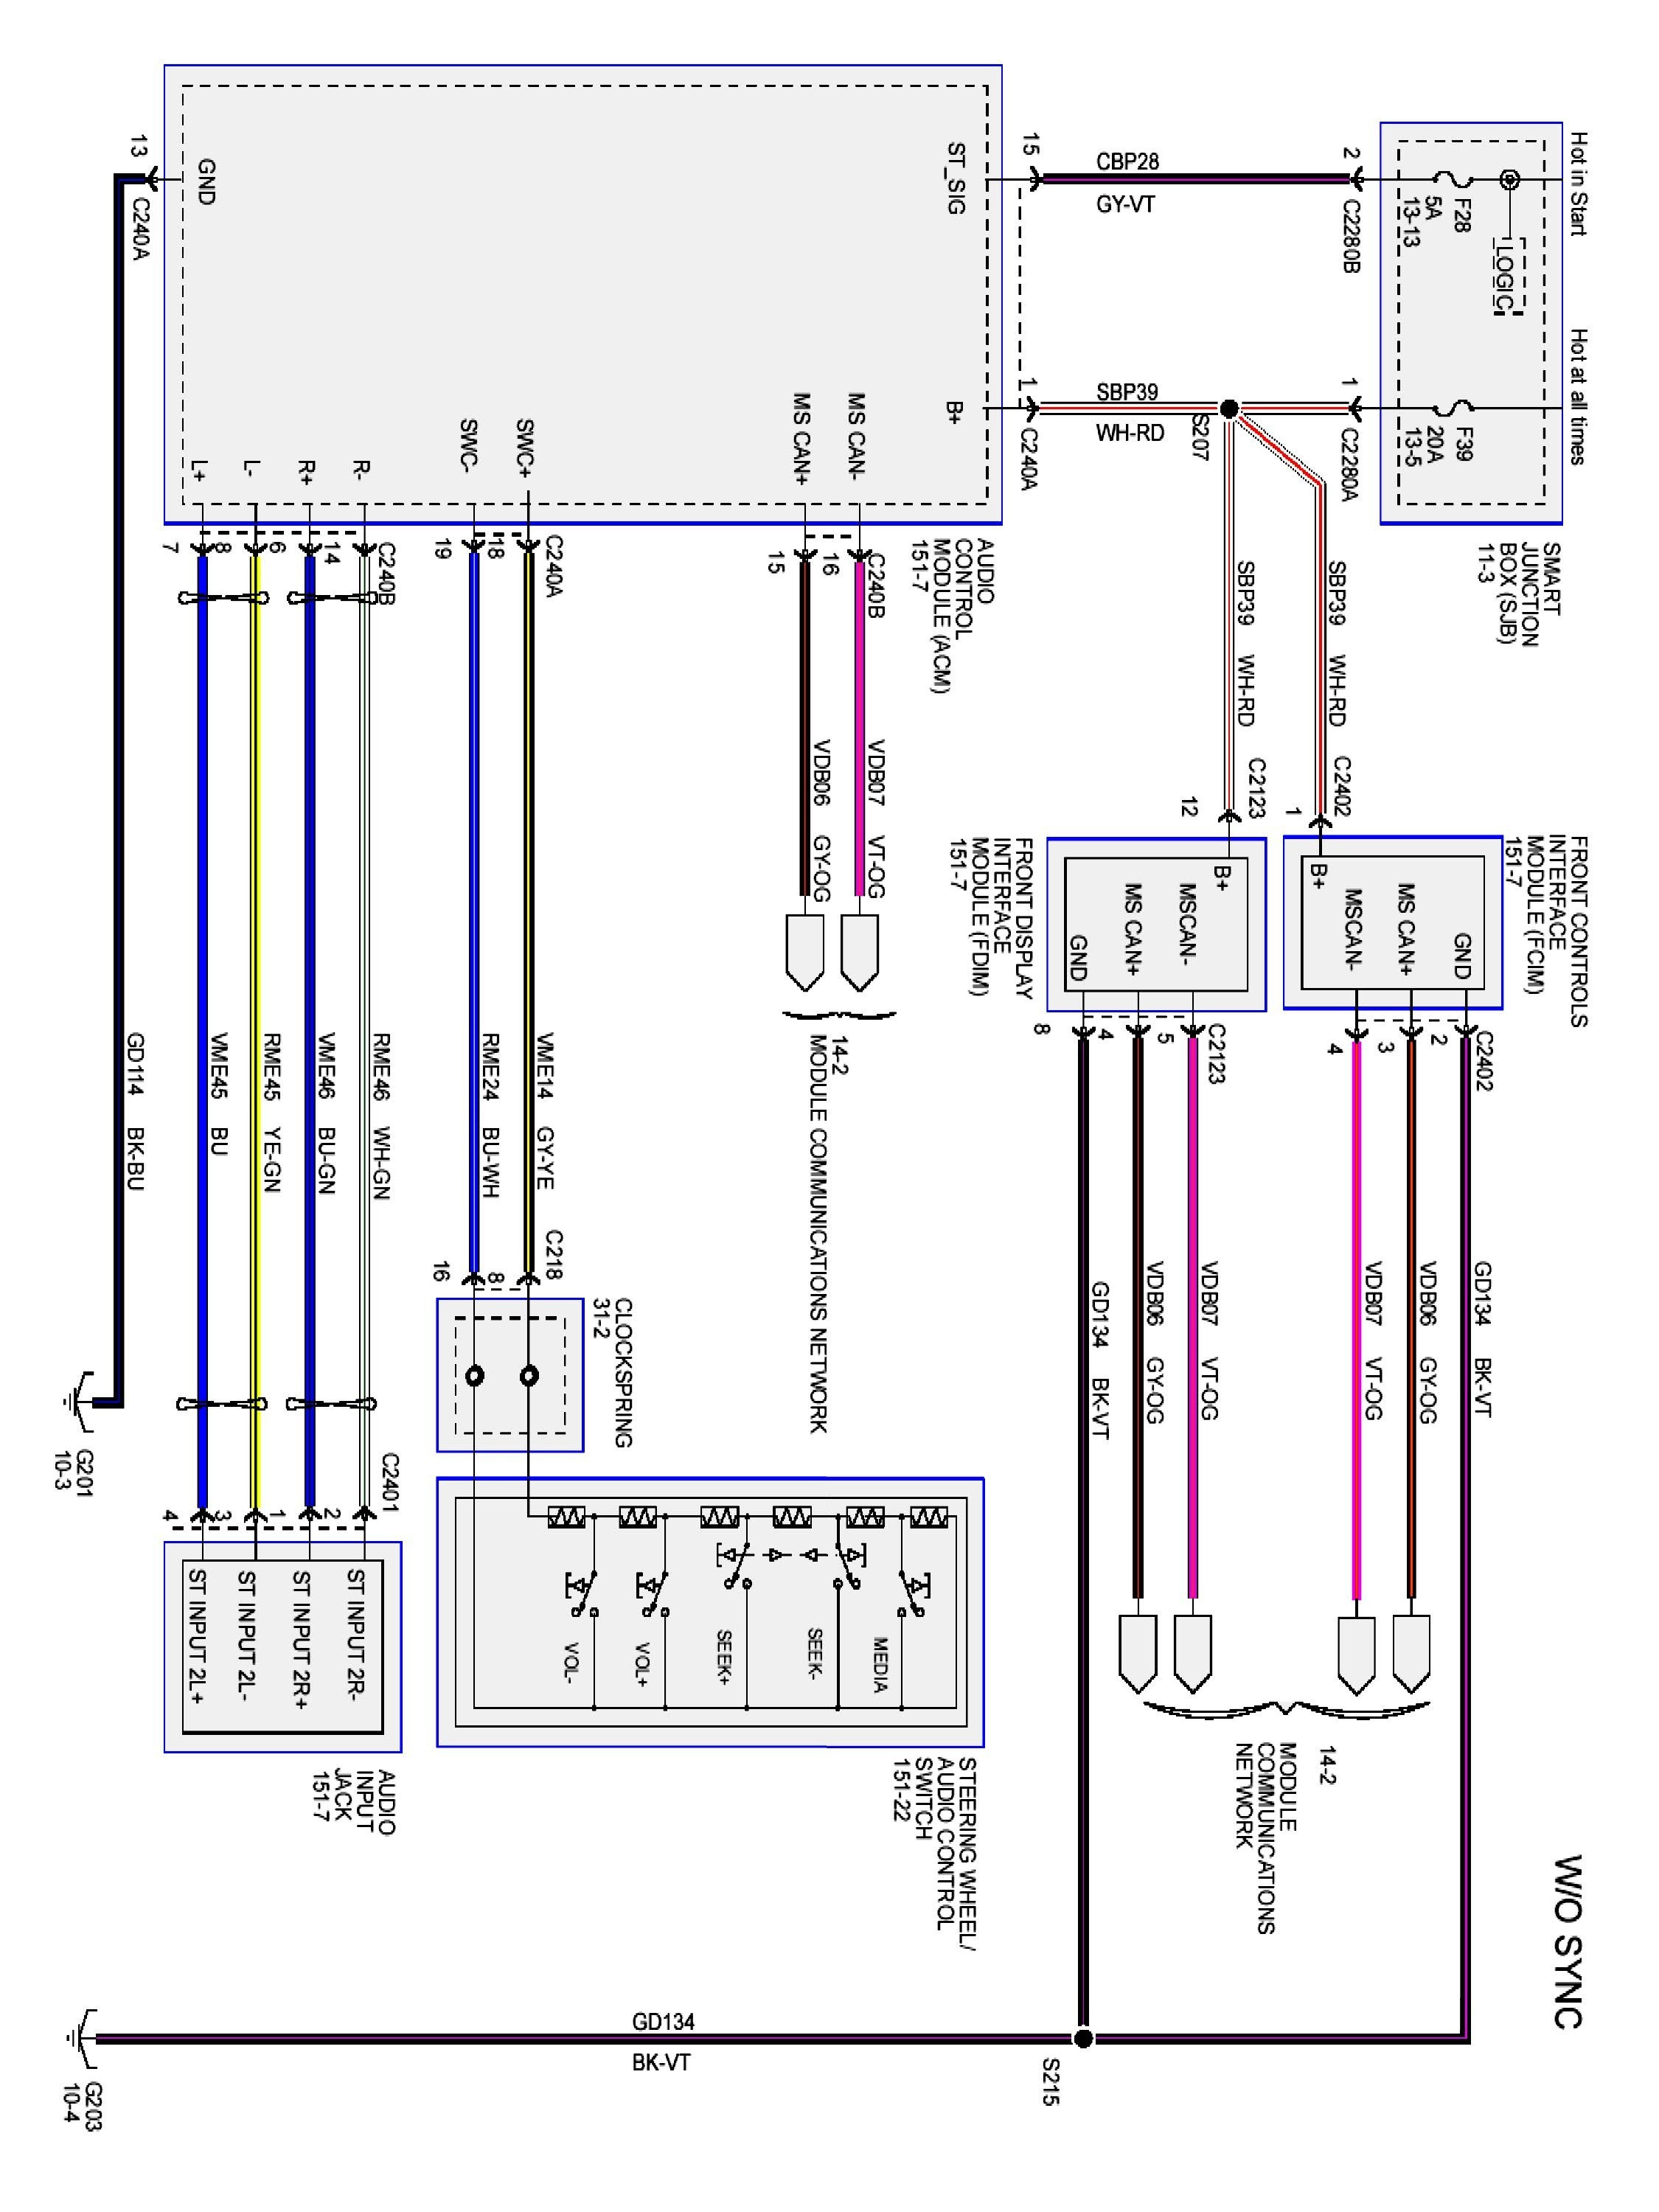 Ford Tauru Heater Control Wiring Diagram